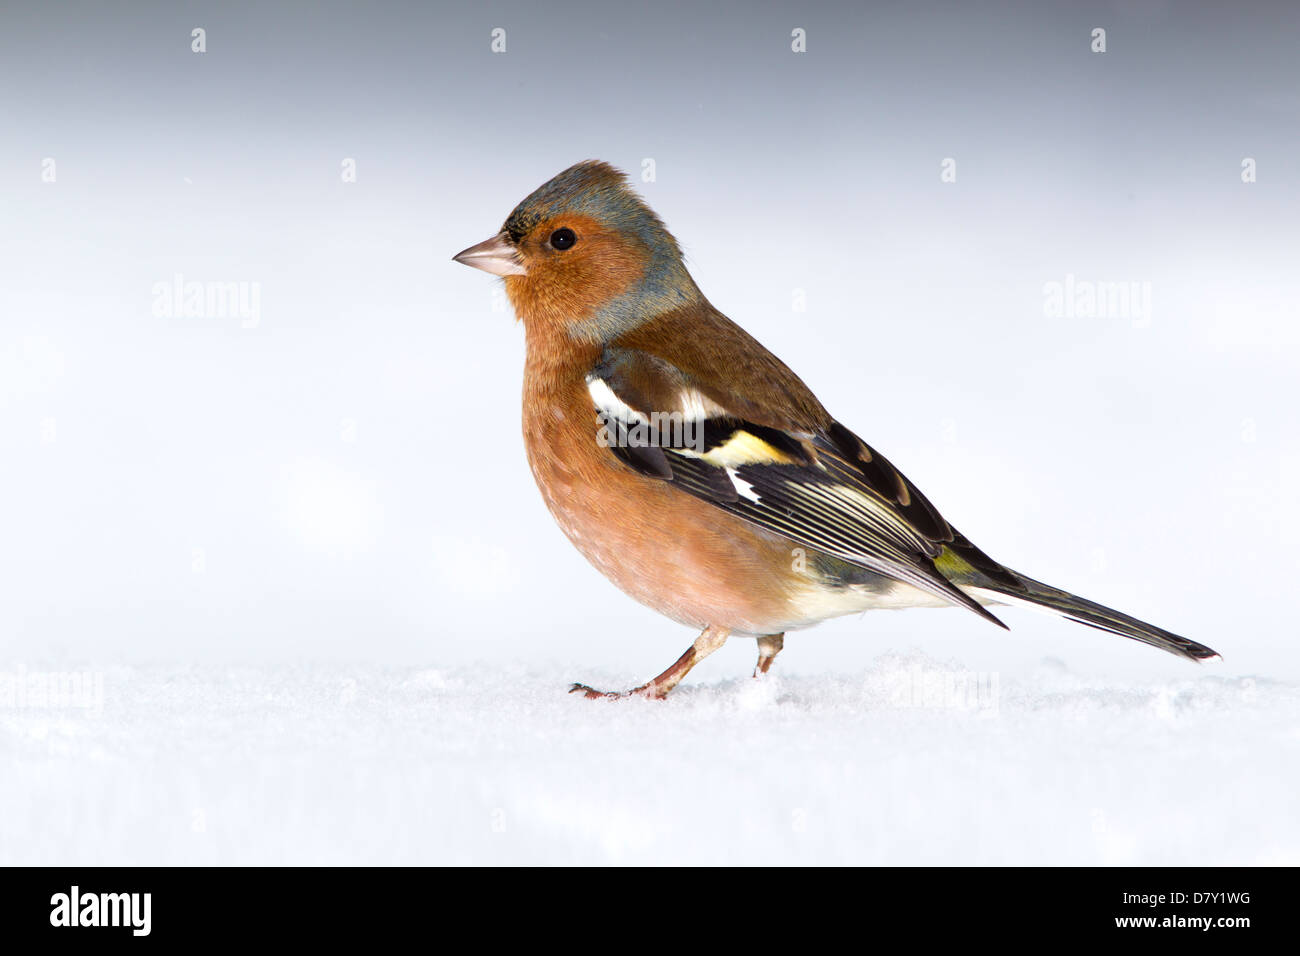 CHAFFINCH ON SNOW - Stock Image